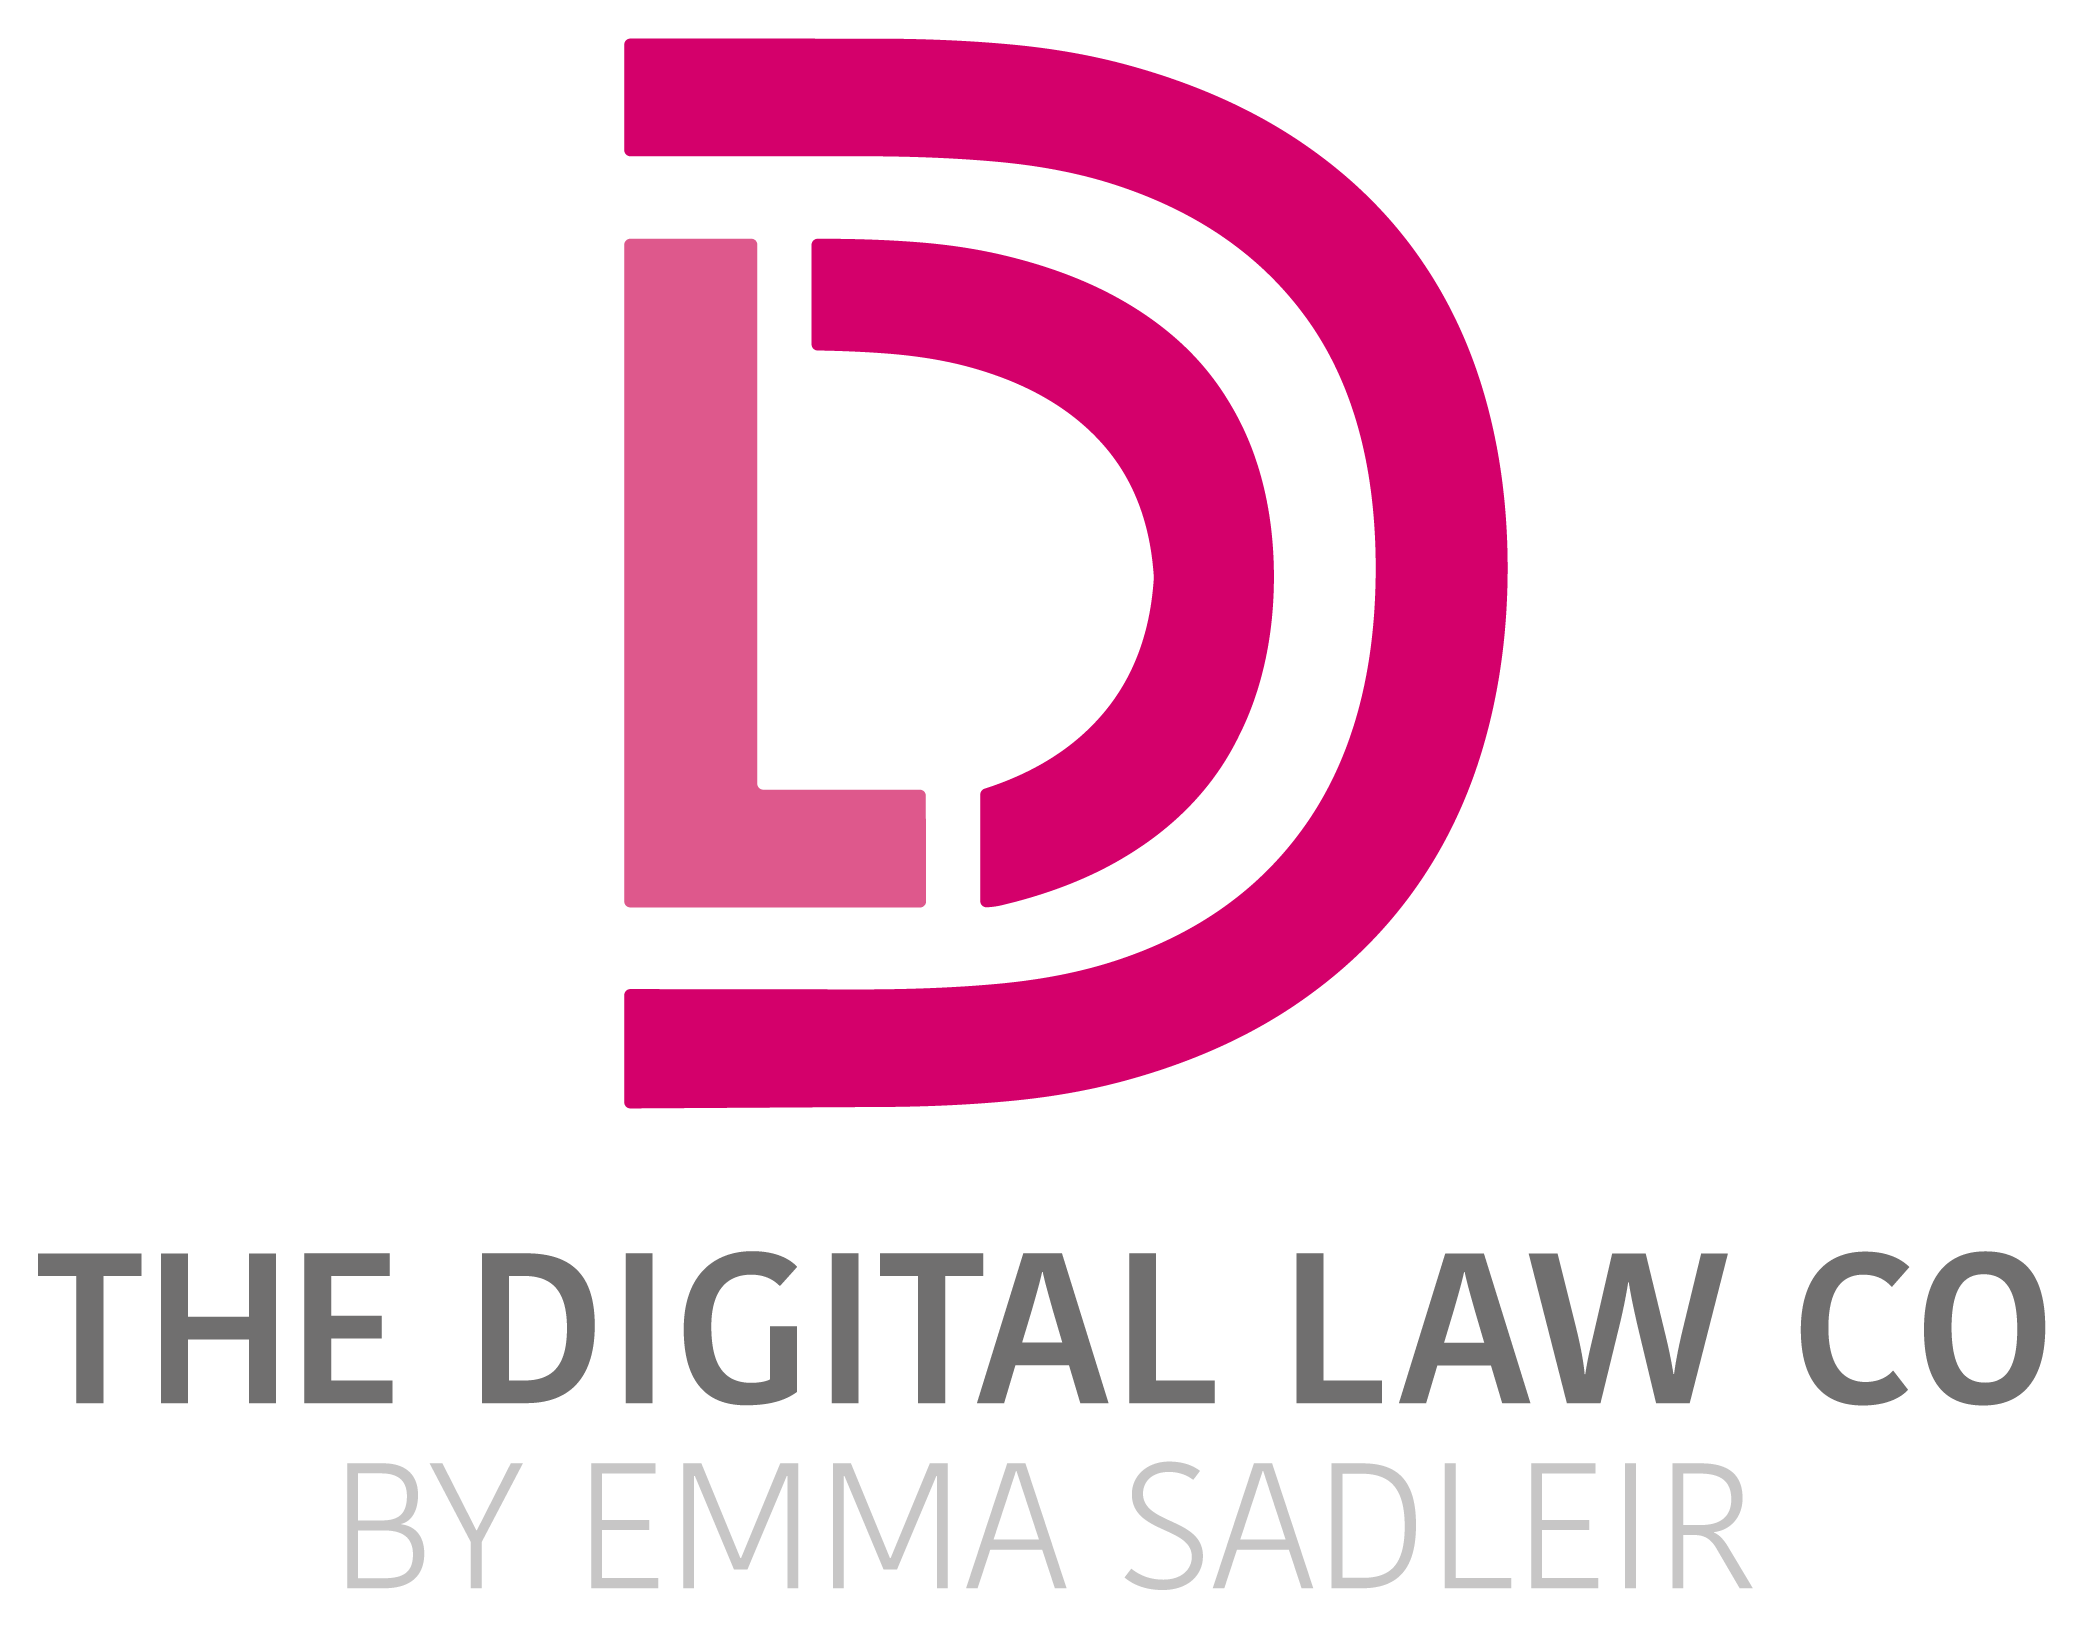 The Digital Law Company by Emma Sadleir